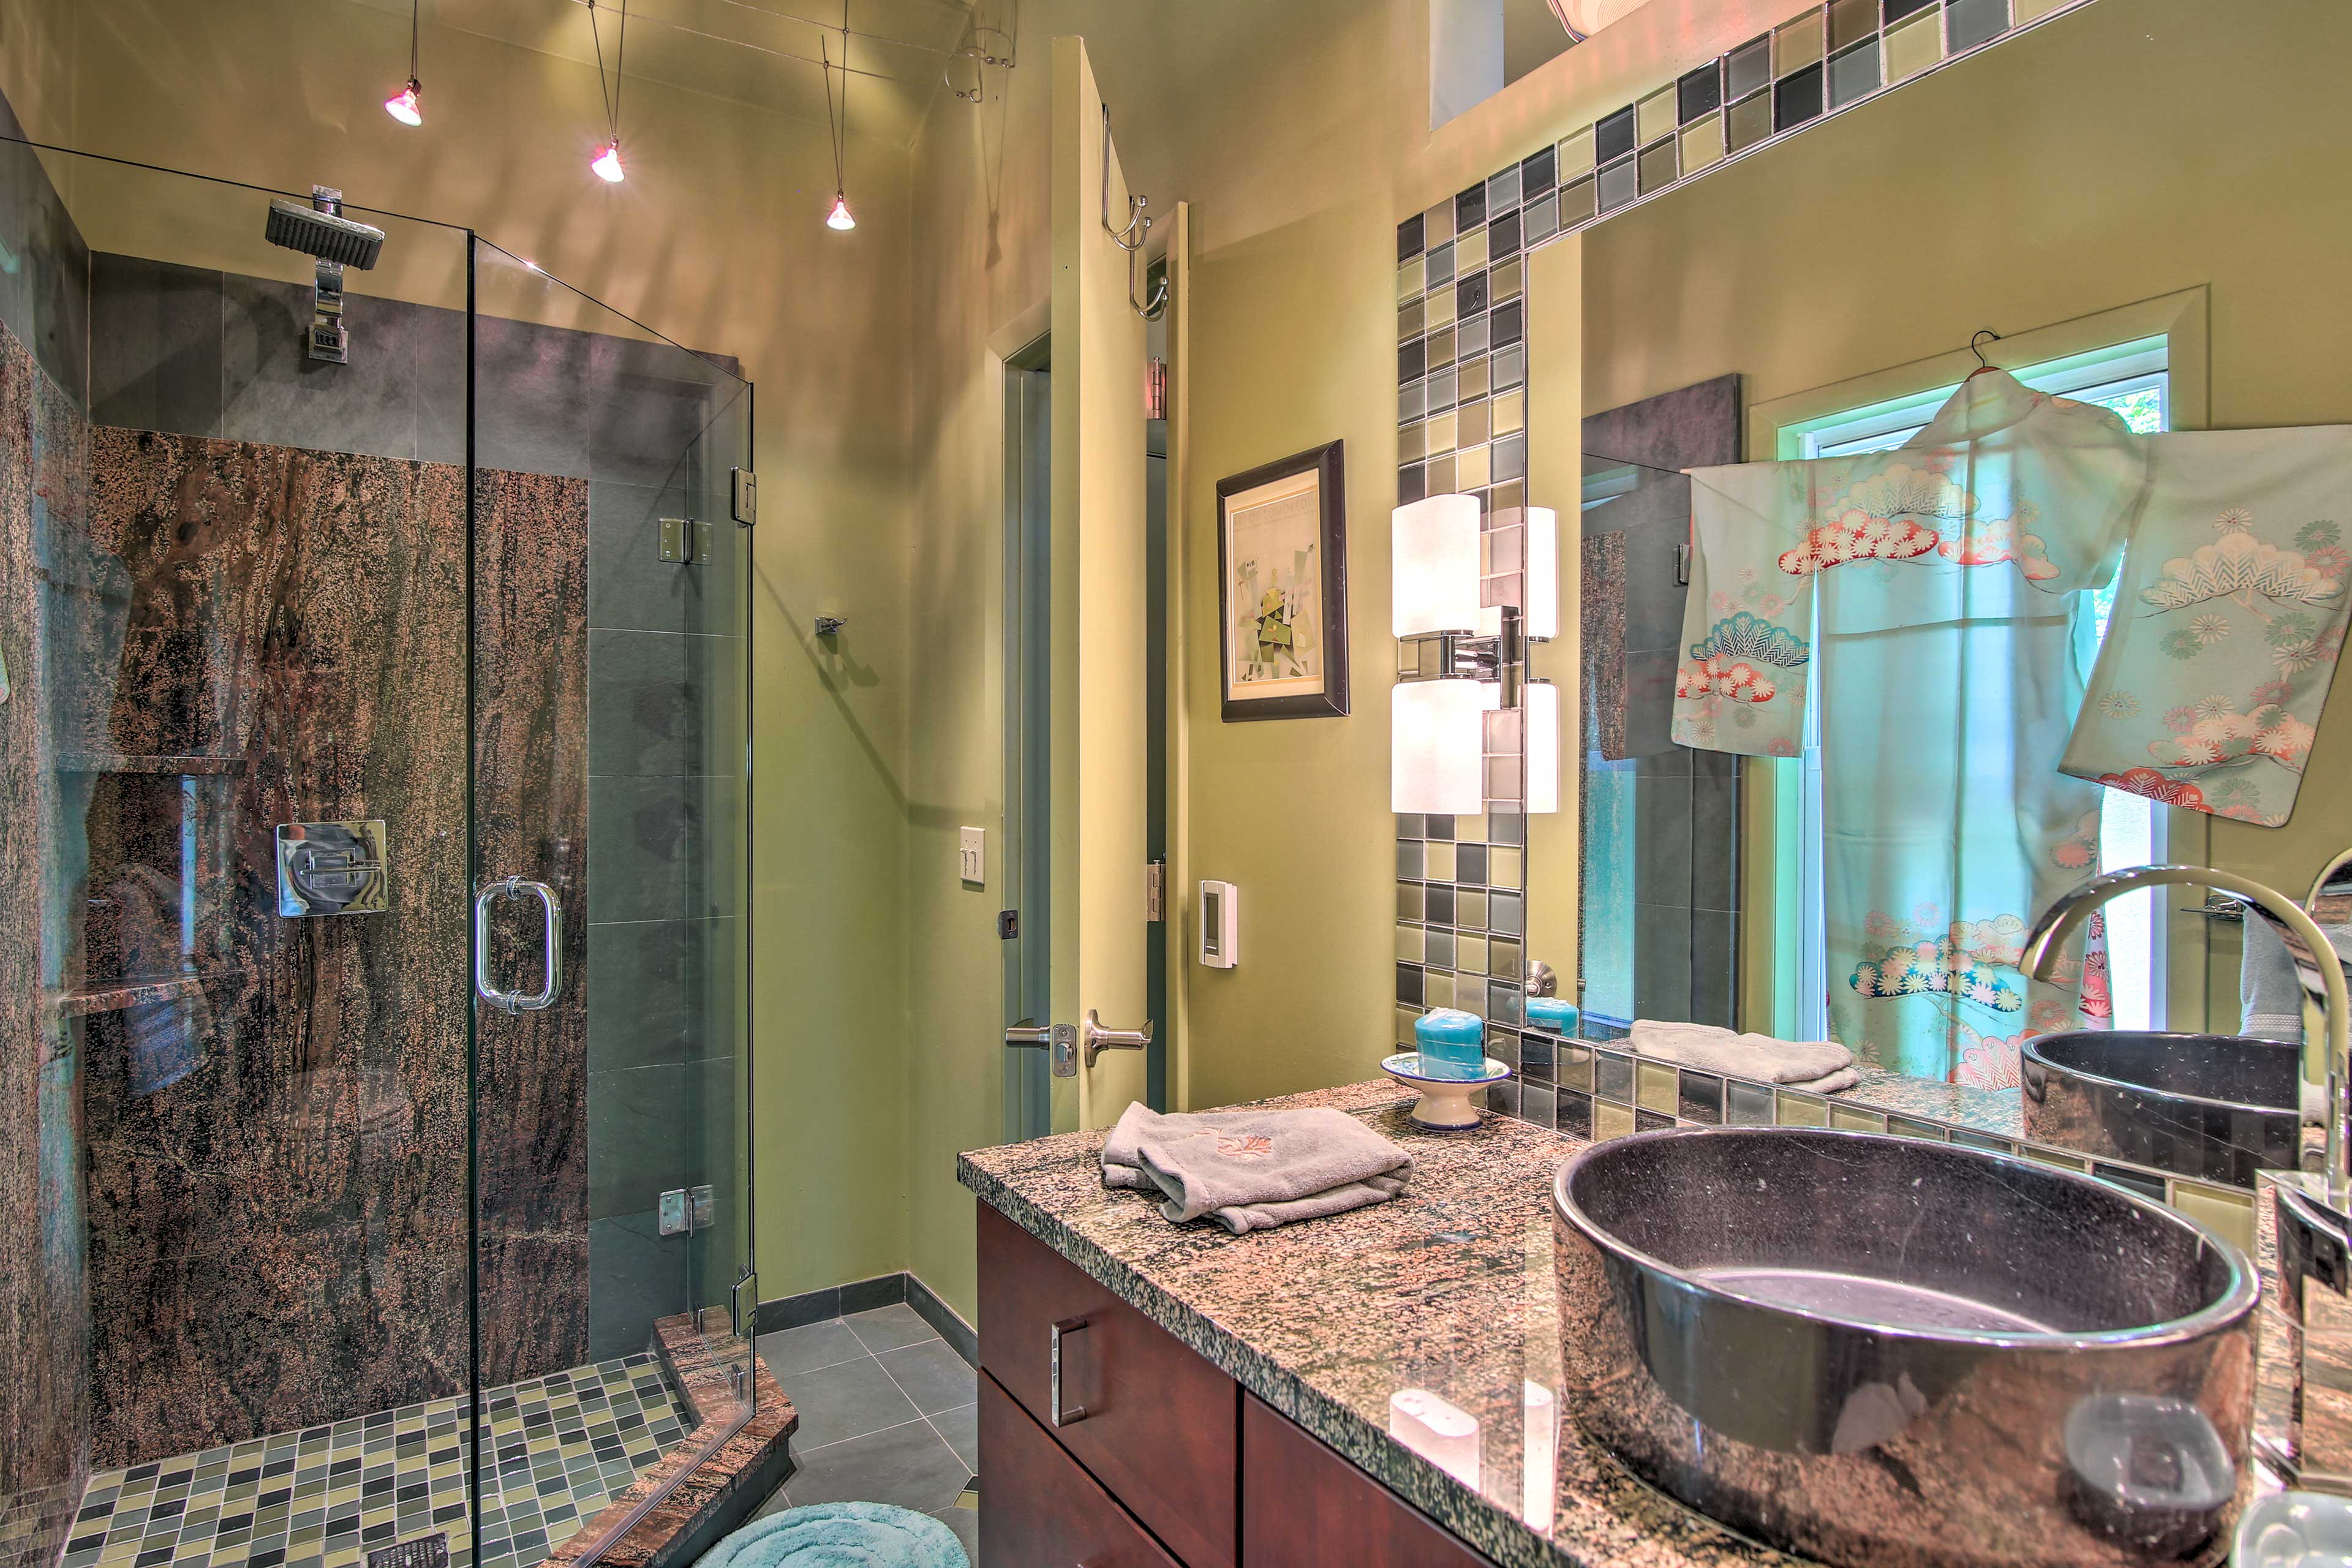 Use the walk-in shower to wash off.